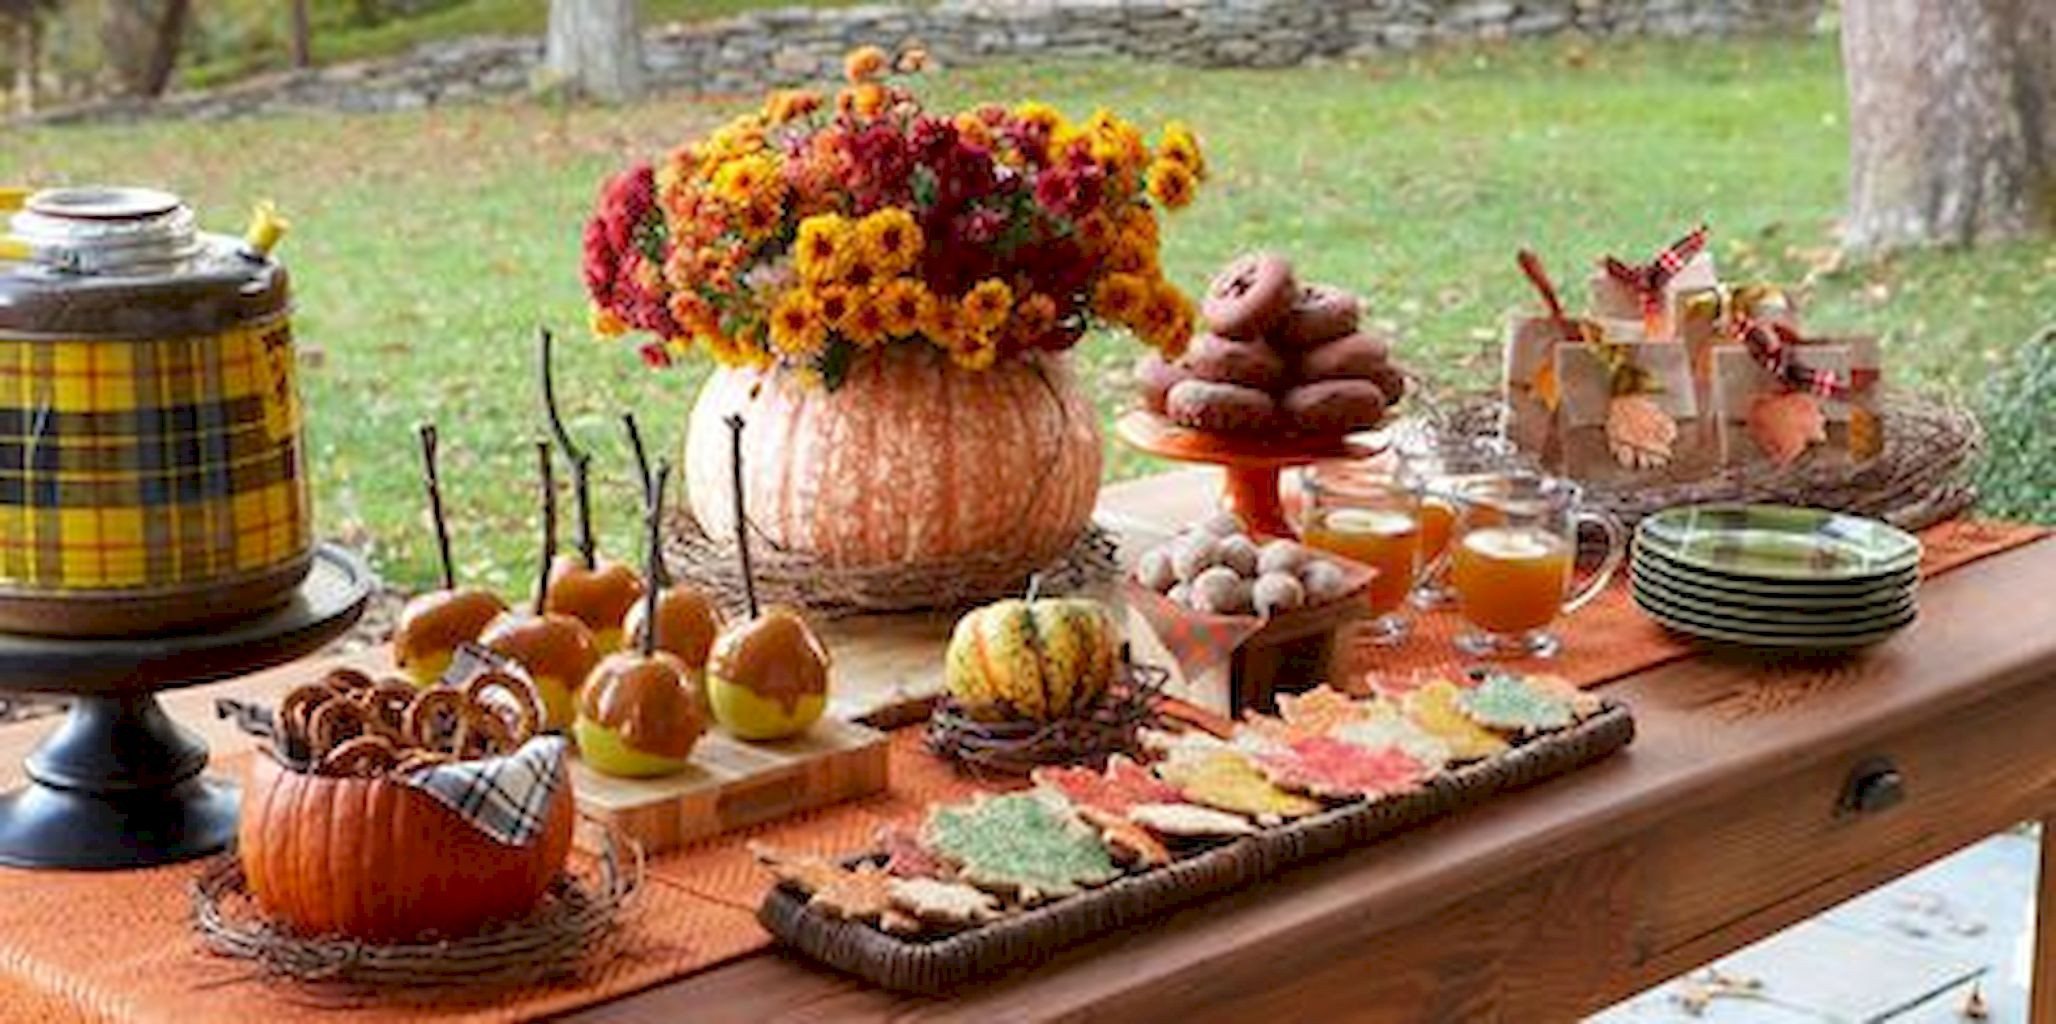 Thanksgiving Dinner Table Decorations  60 DIY Thanksgiving Centerpieces Ideas on Friendly Bud